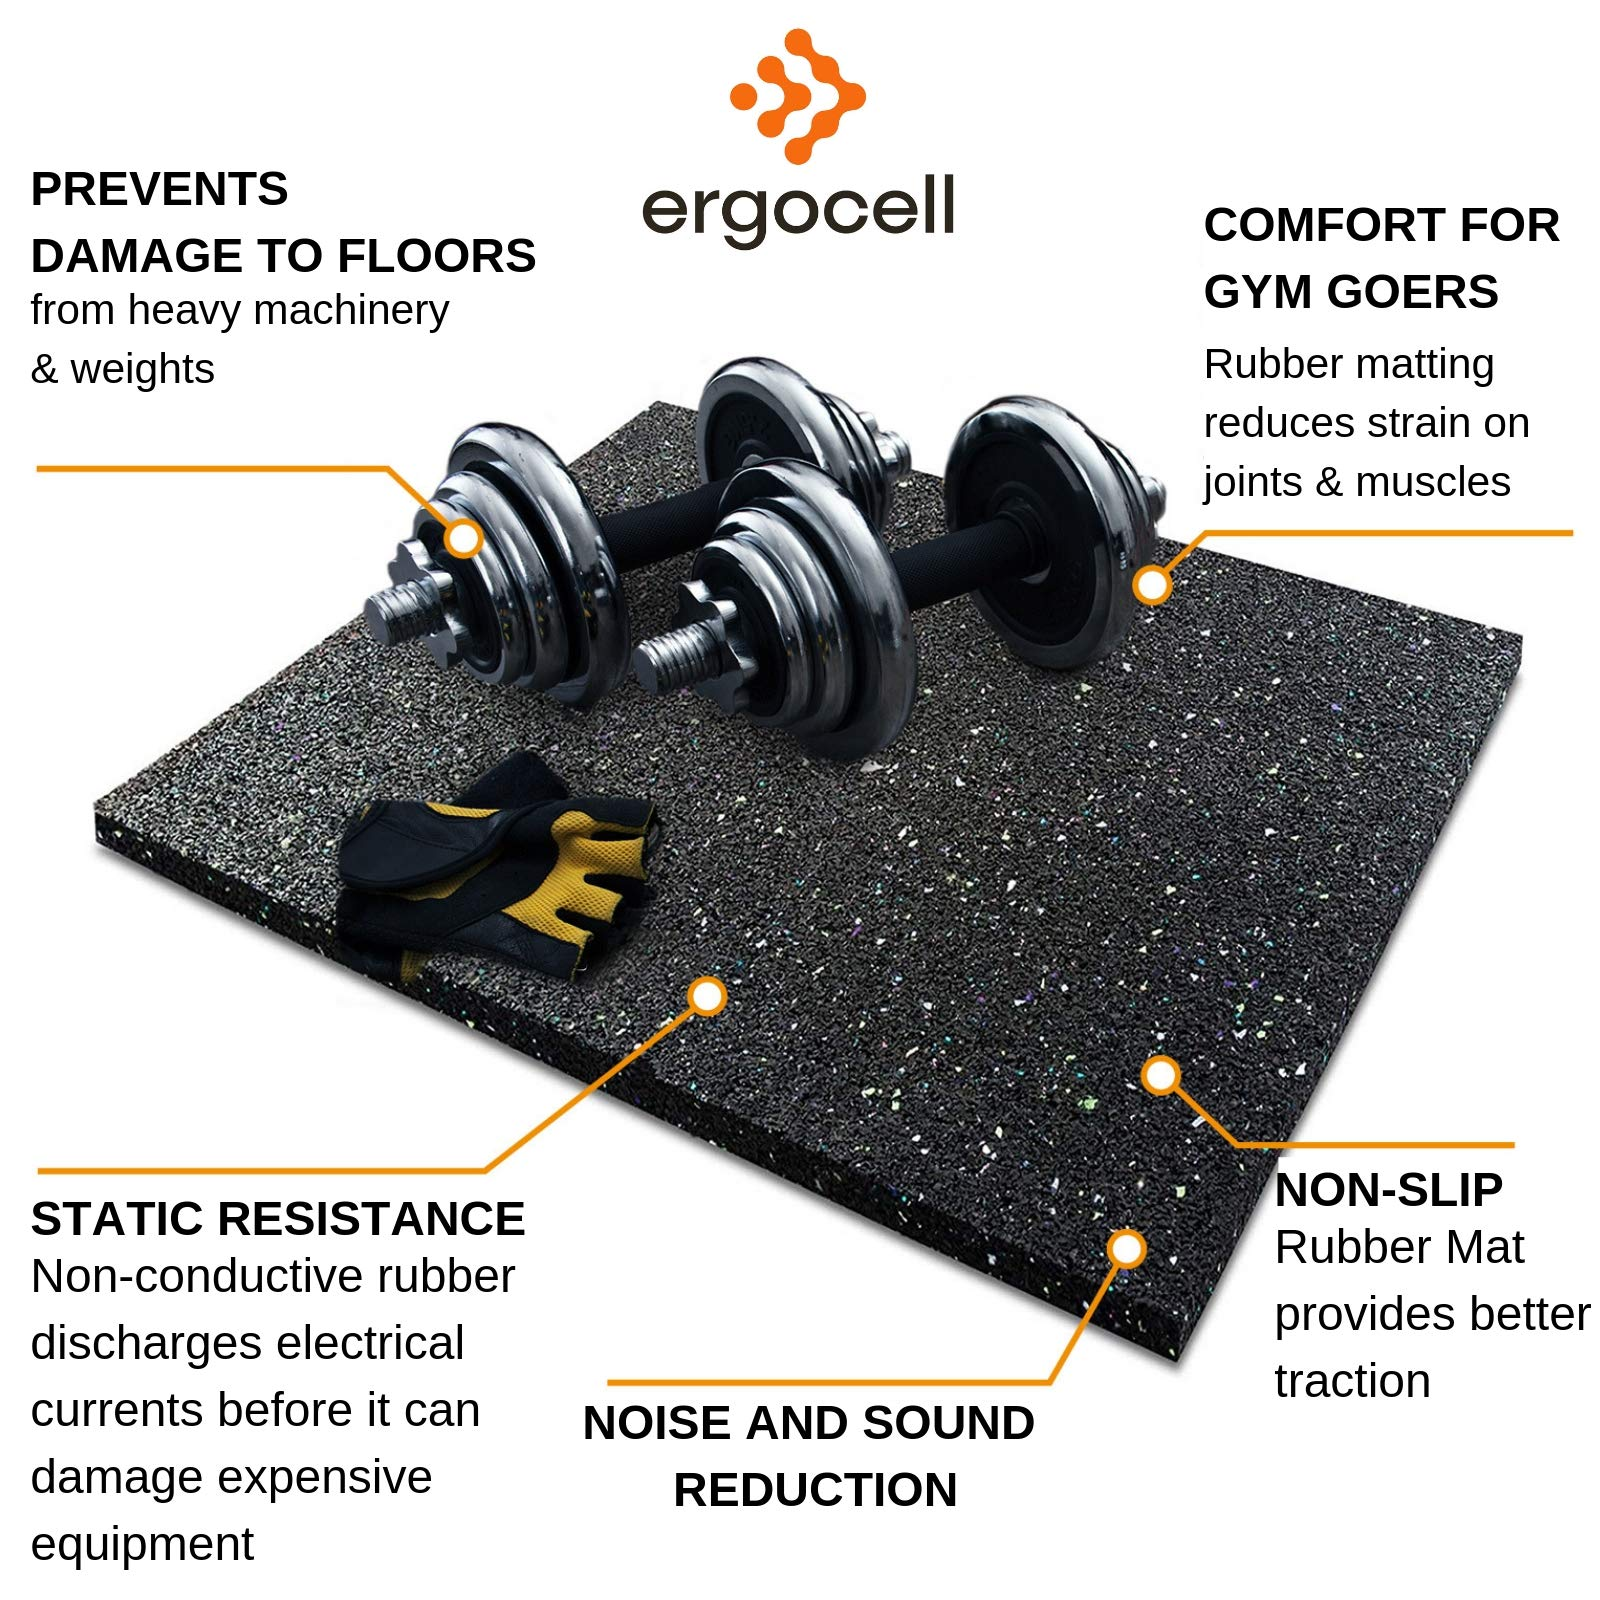 Ergocell Recycled Rubber Floor Mat – Shock Absorbent Gym Mat Flooring & Horse Stall Mat | Three Thicknesses, Multiple Sizes | 3/8'' - 2' x 1' by Ergocell (Image #7)